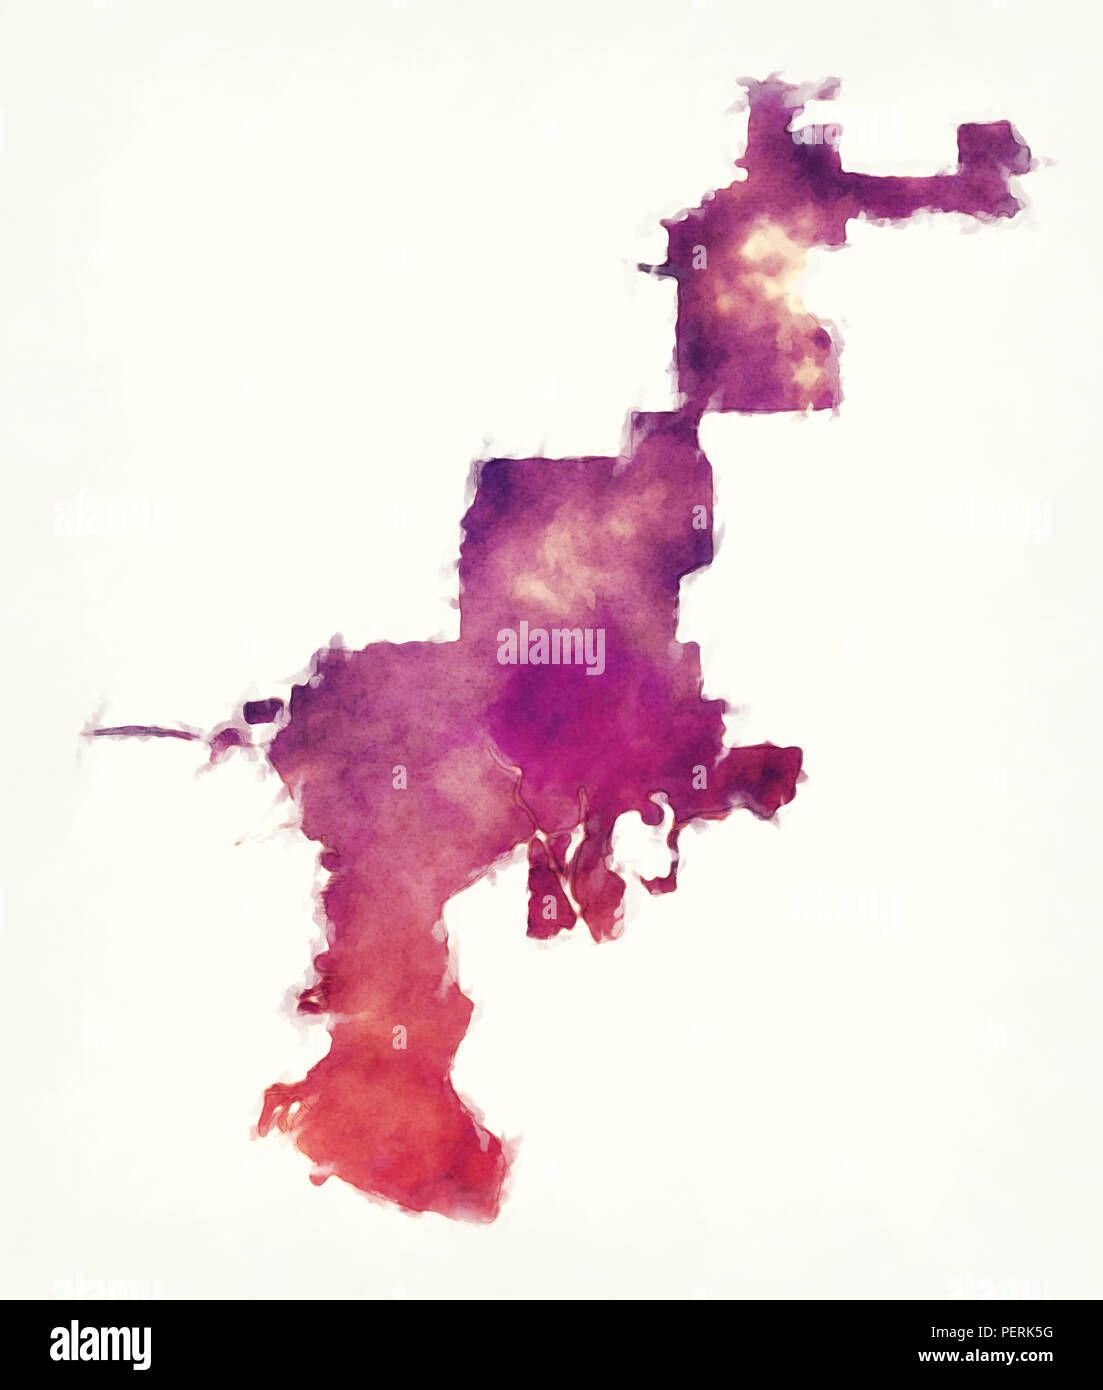 Map Of Watercolor Florida.Tampa Florida City Watercolor Map In Front Of A White Background